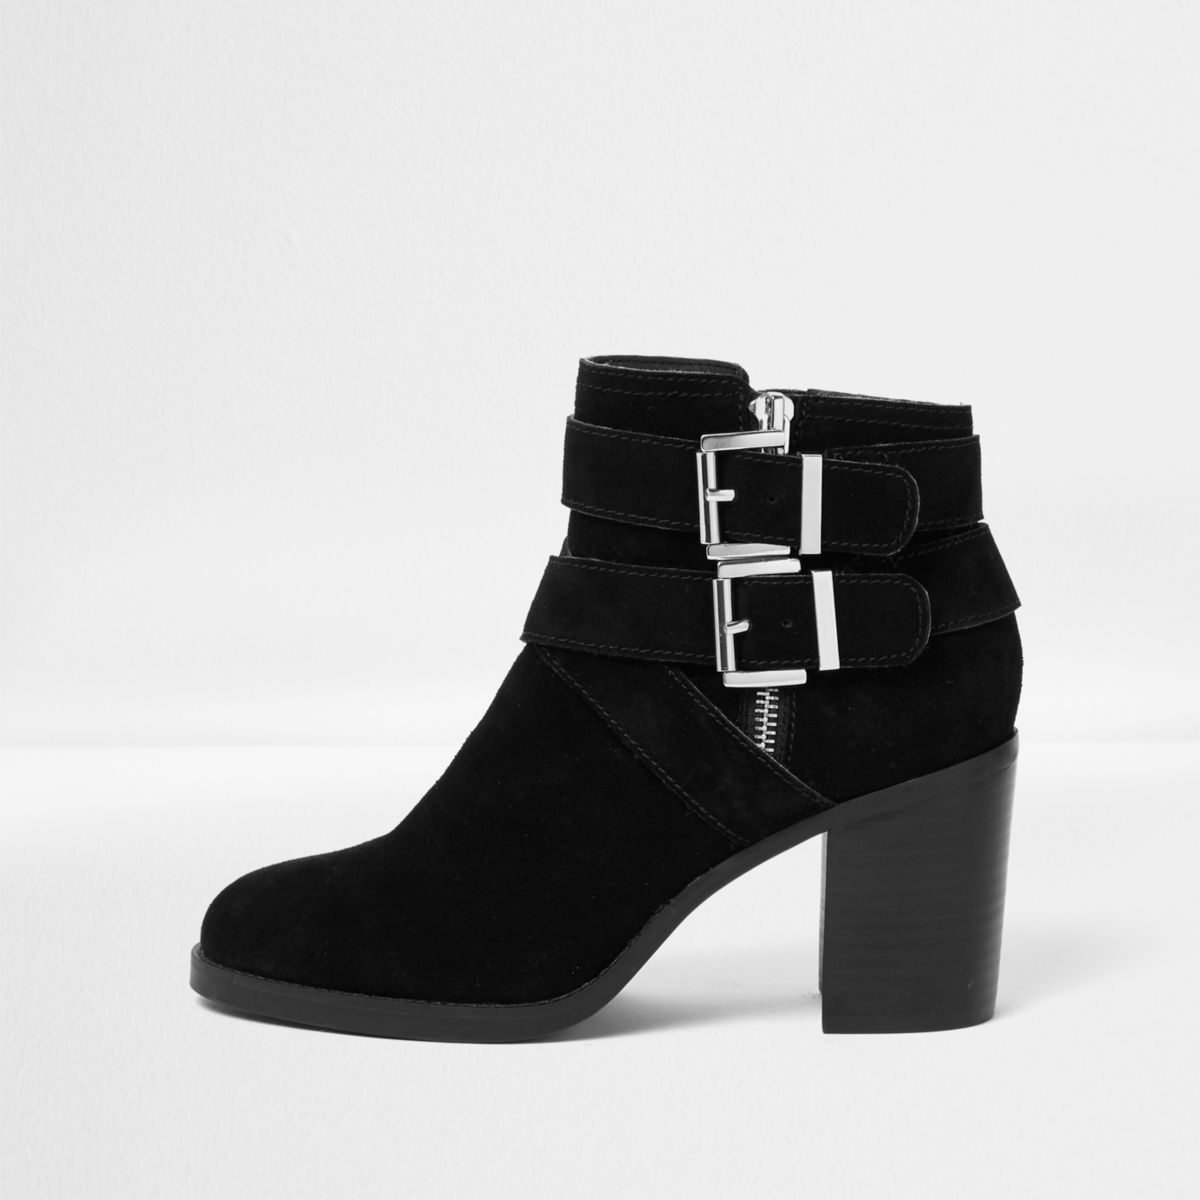 Black suede triple buckle block heel boots